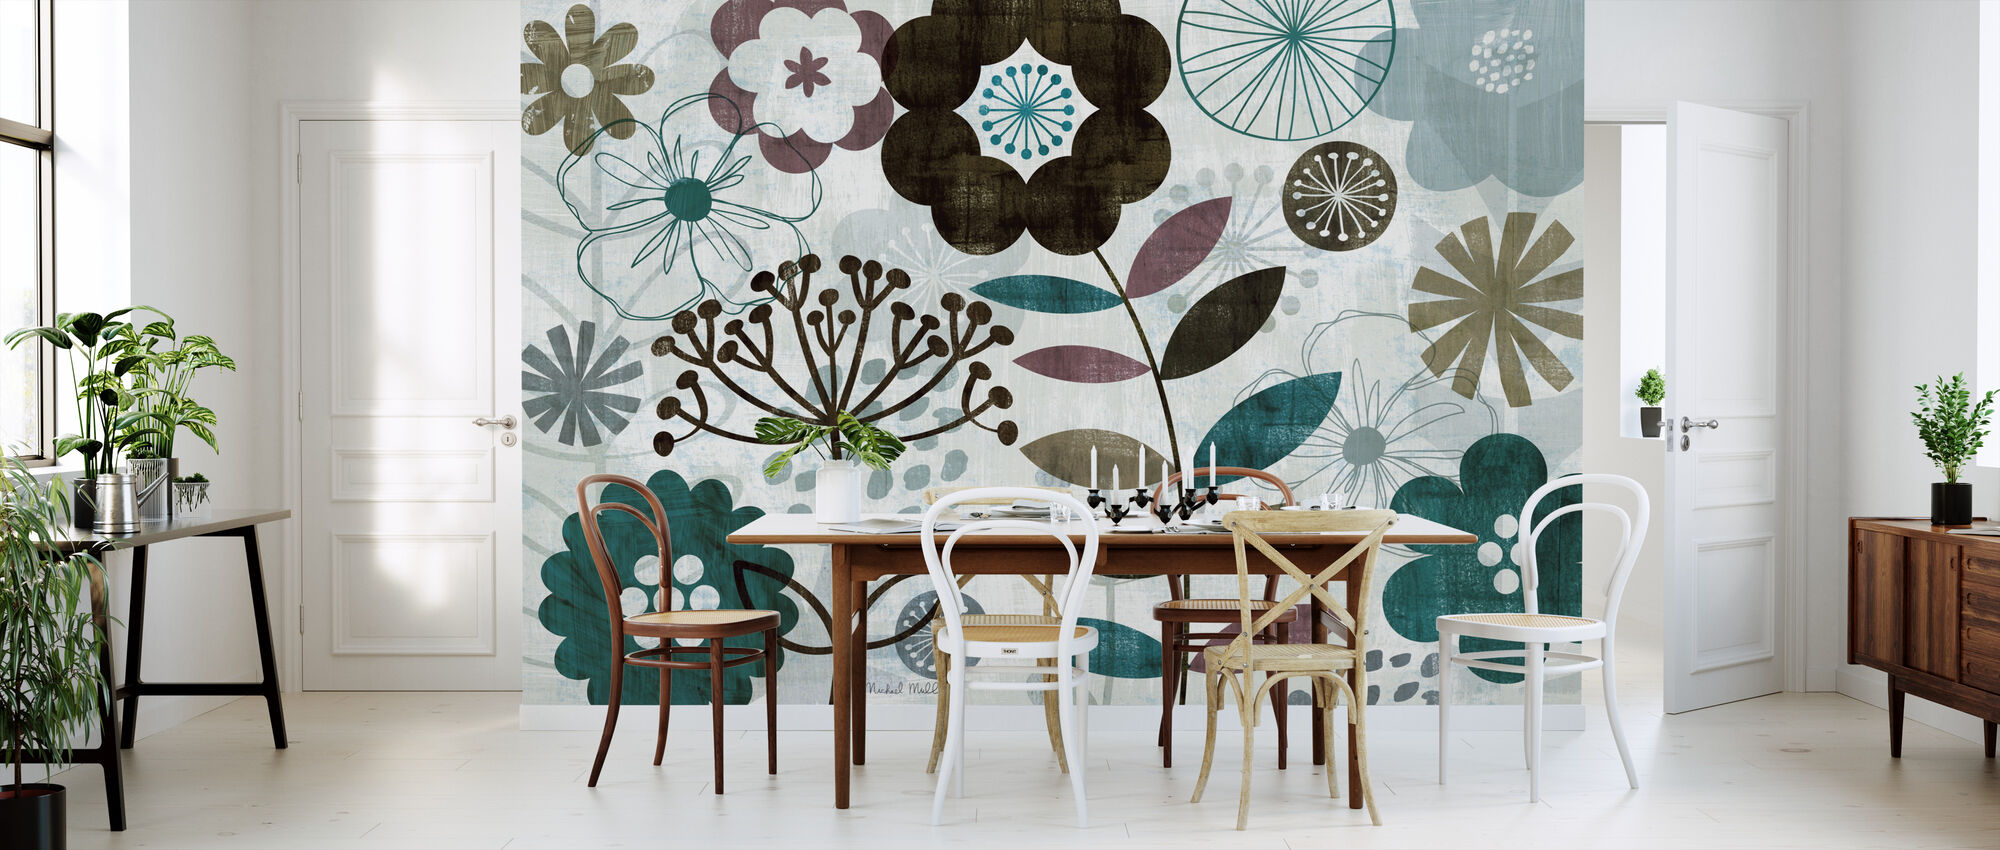 Floral Pop Turquoise - Wallpaper - Kitchen